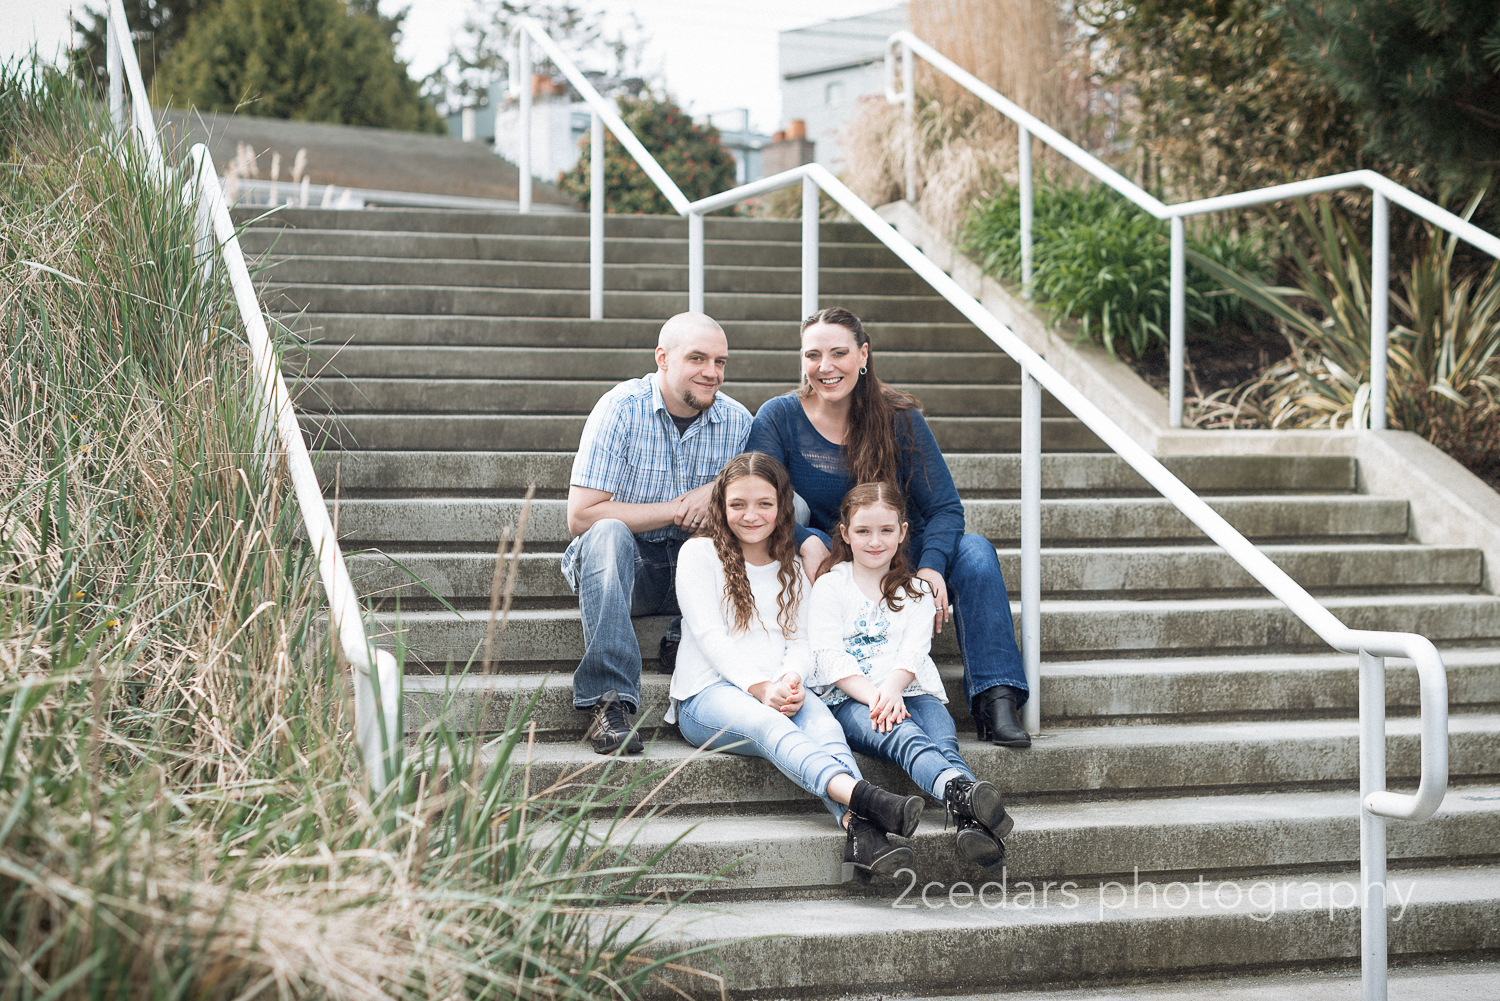 2 Cedars Photography - Family Photos at Alki Beach in West Seattle